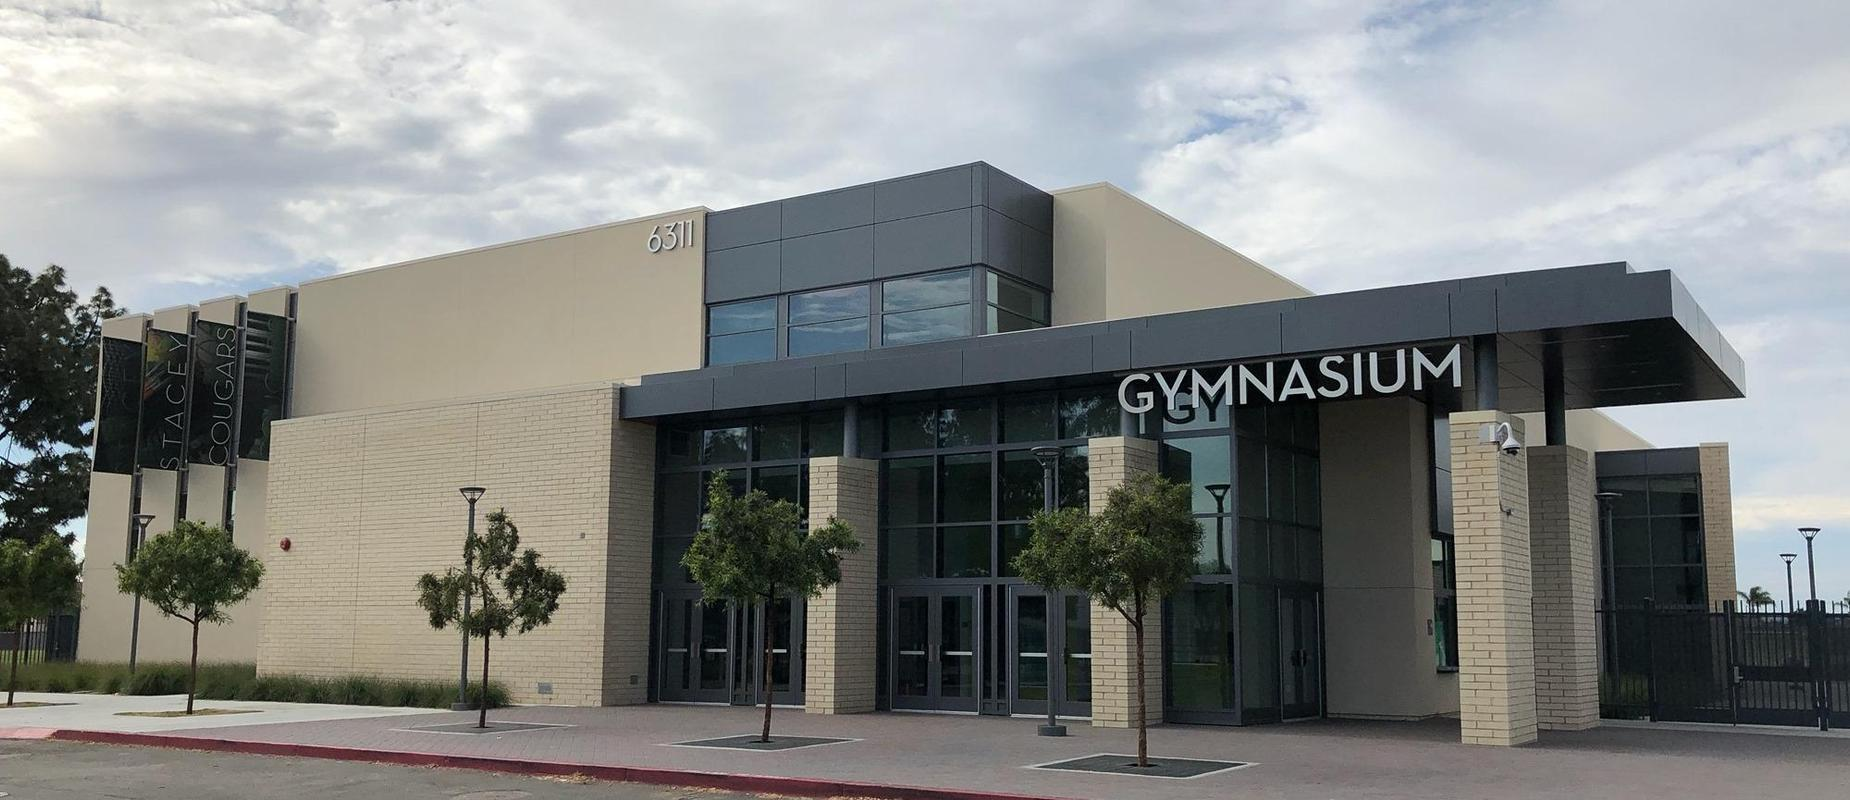 Our new gymnasium